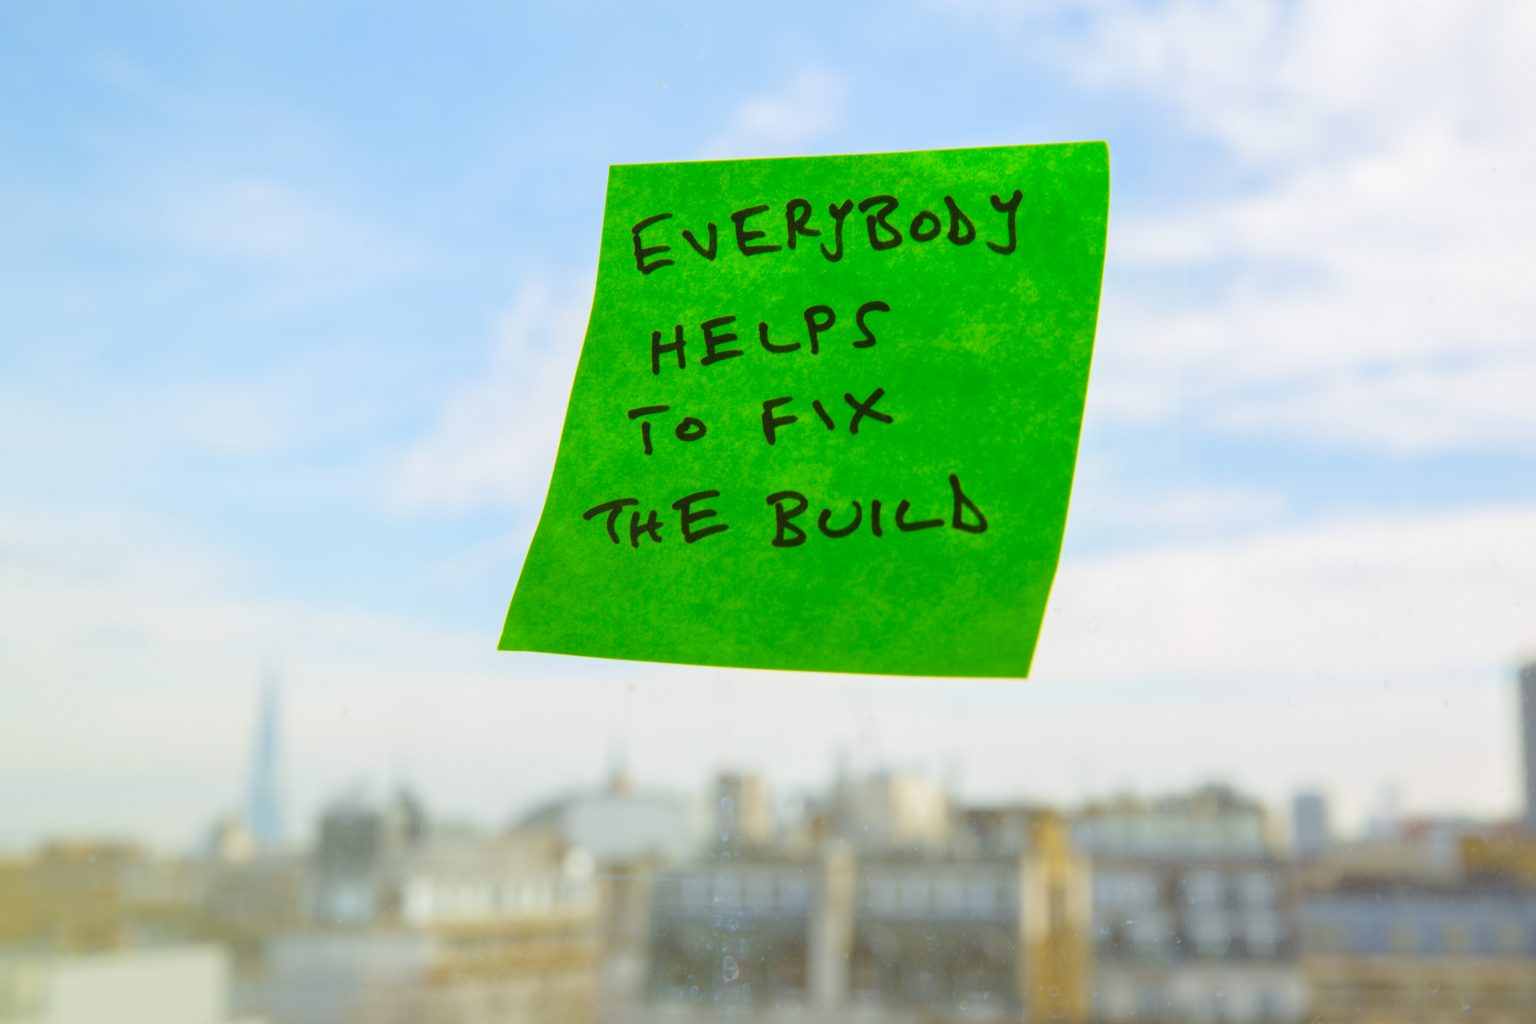 Post-it note: Everyone helps to fix the build